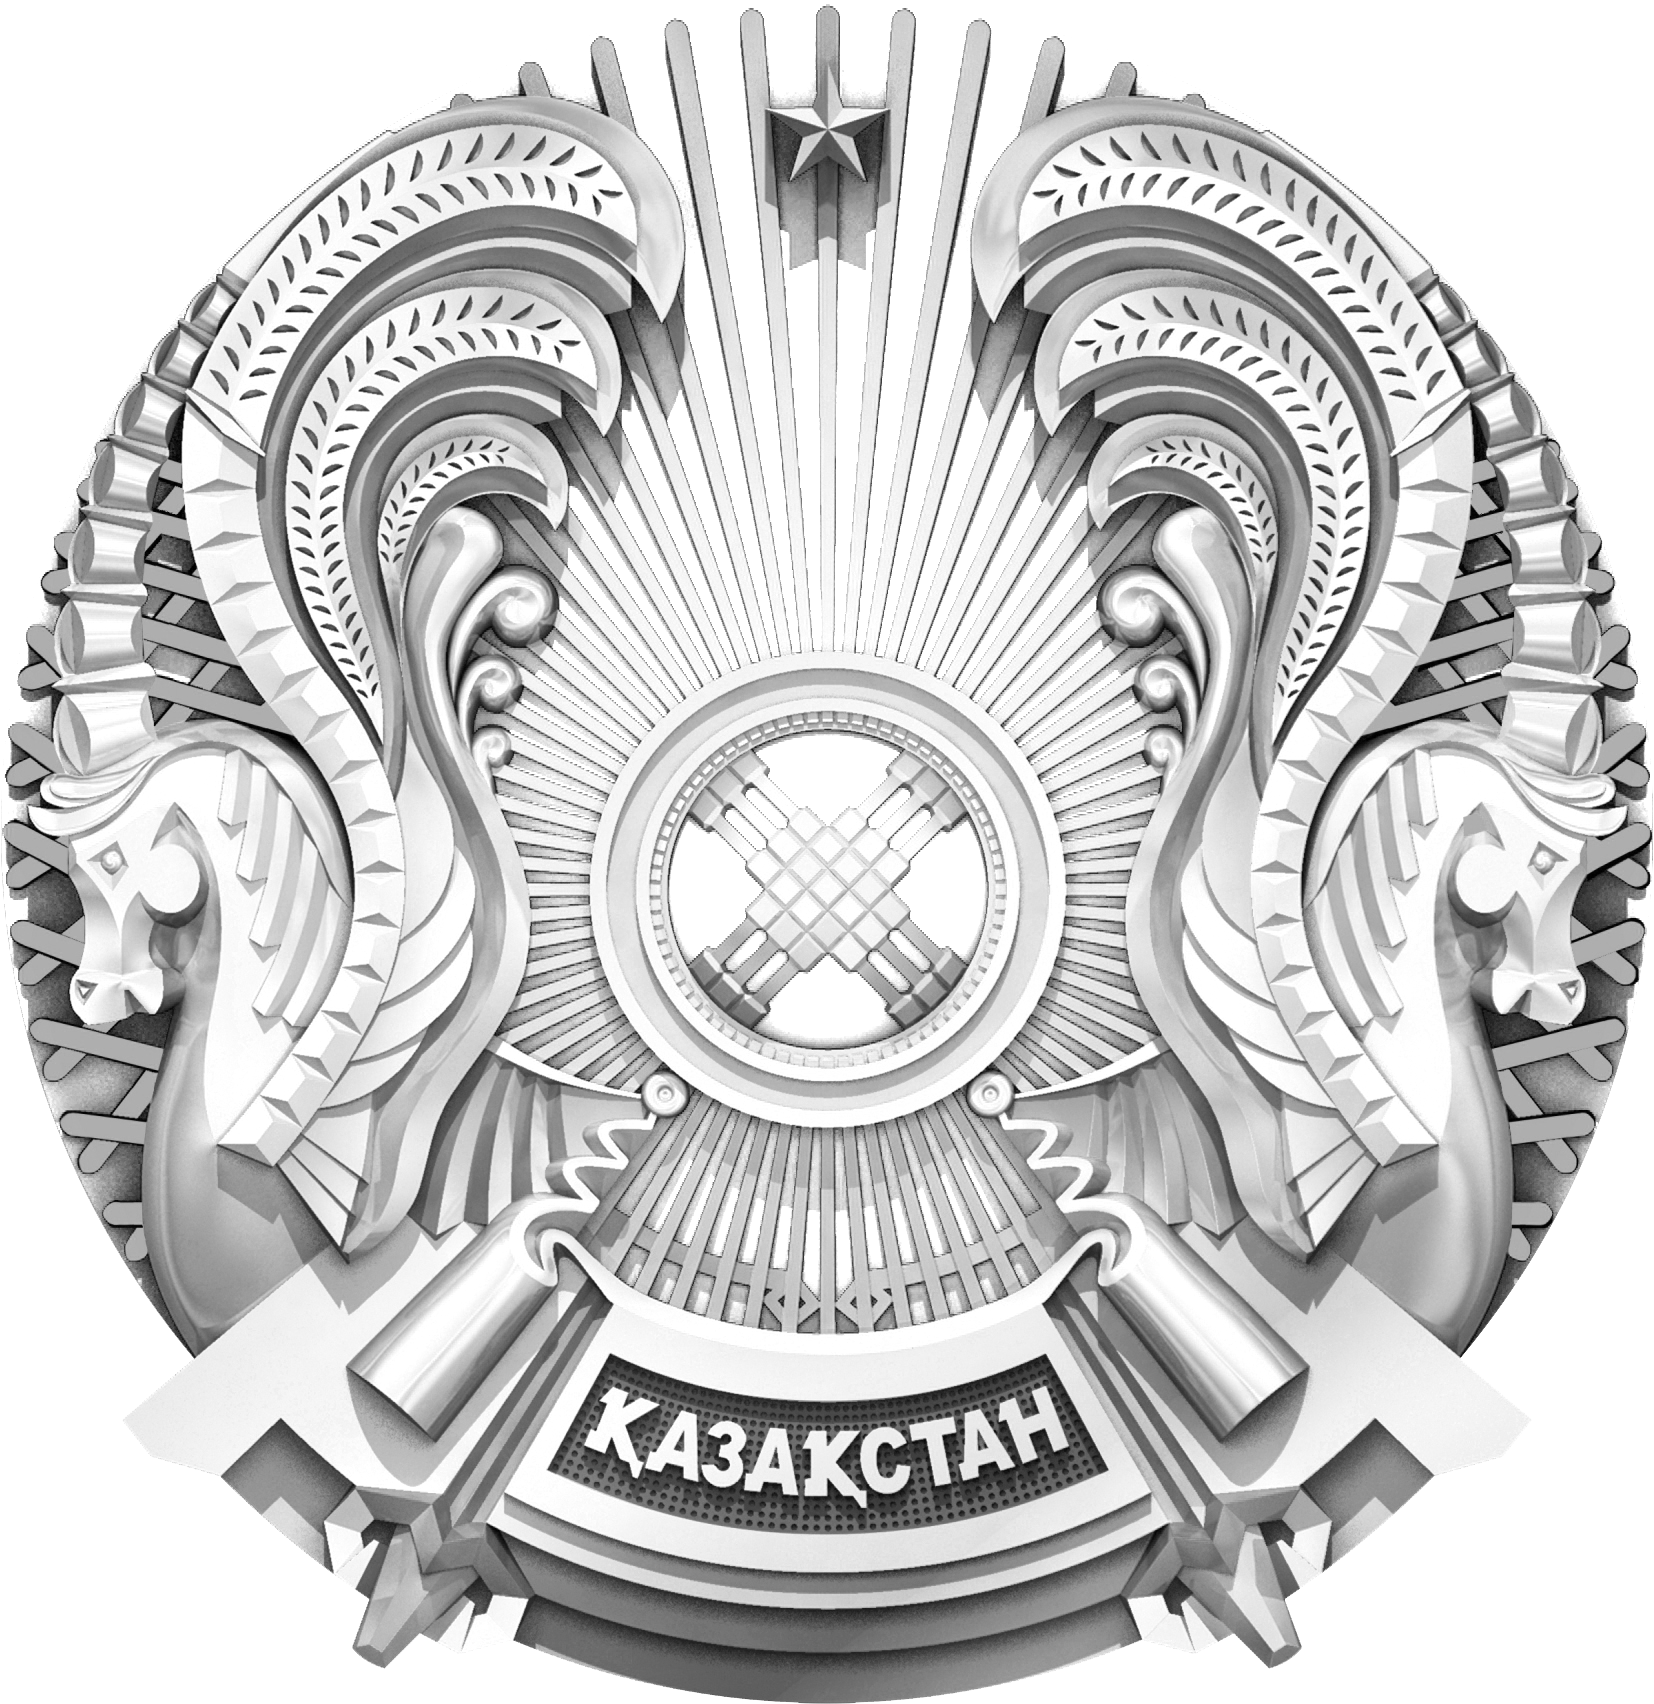 gov of kazak